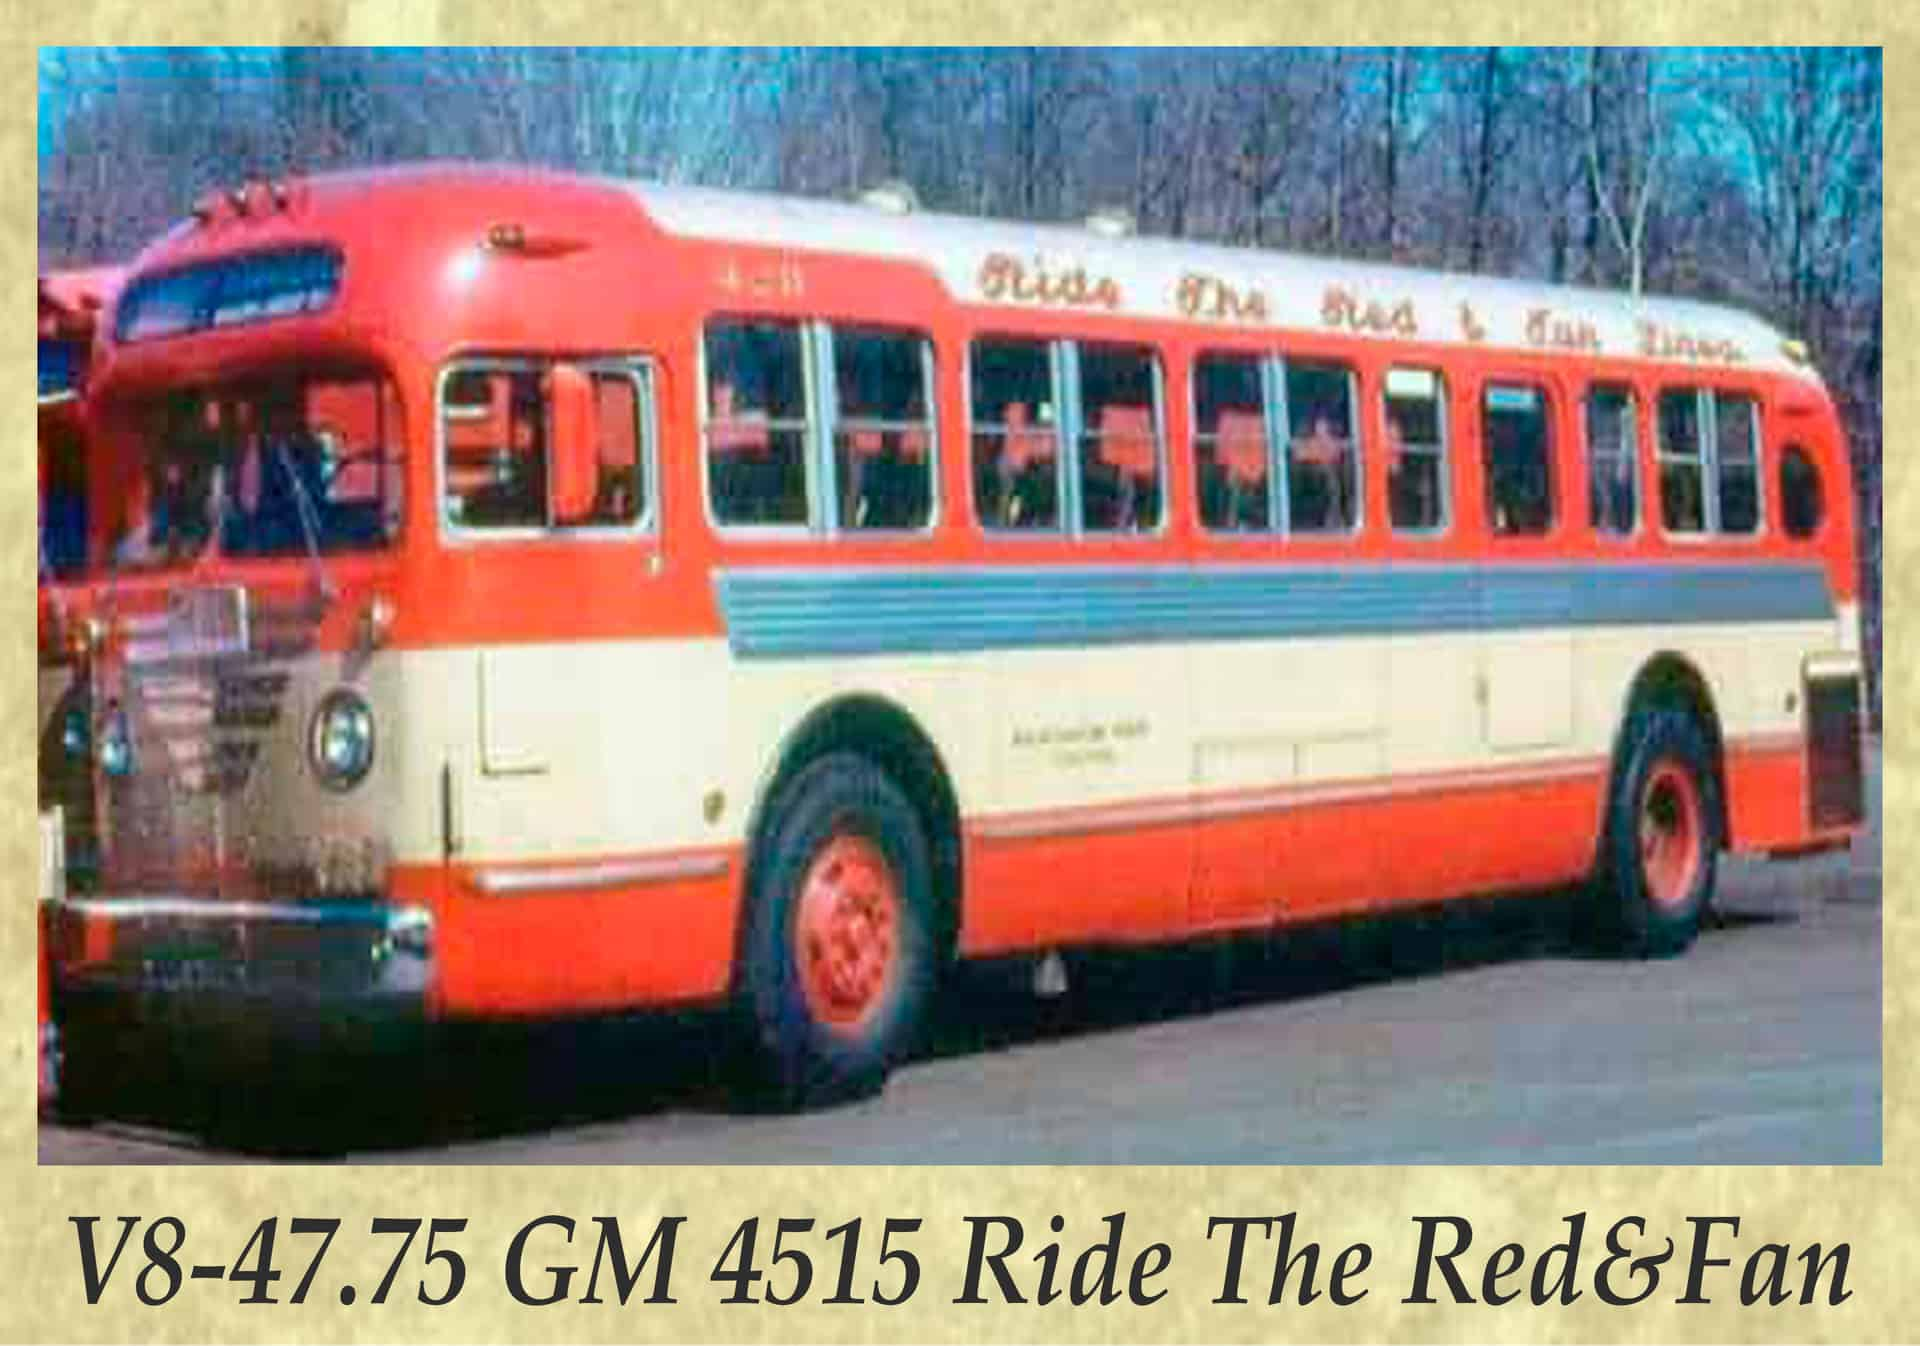 V8-47.75 GM 4515 Ride The Red&Fan